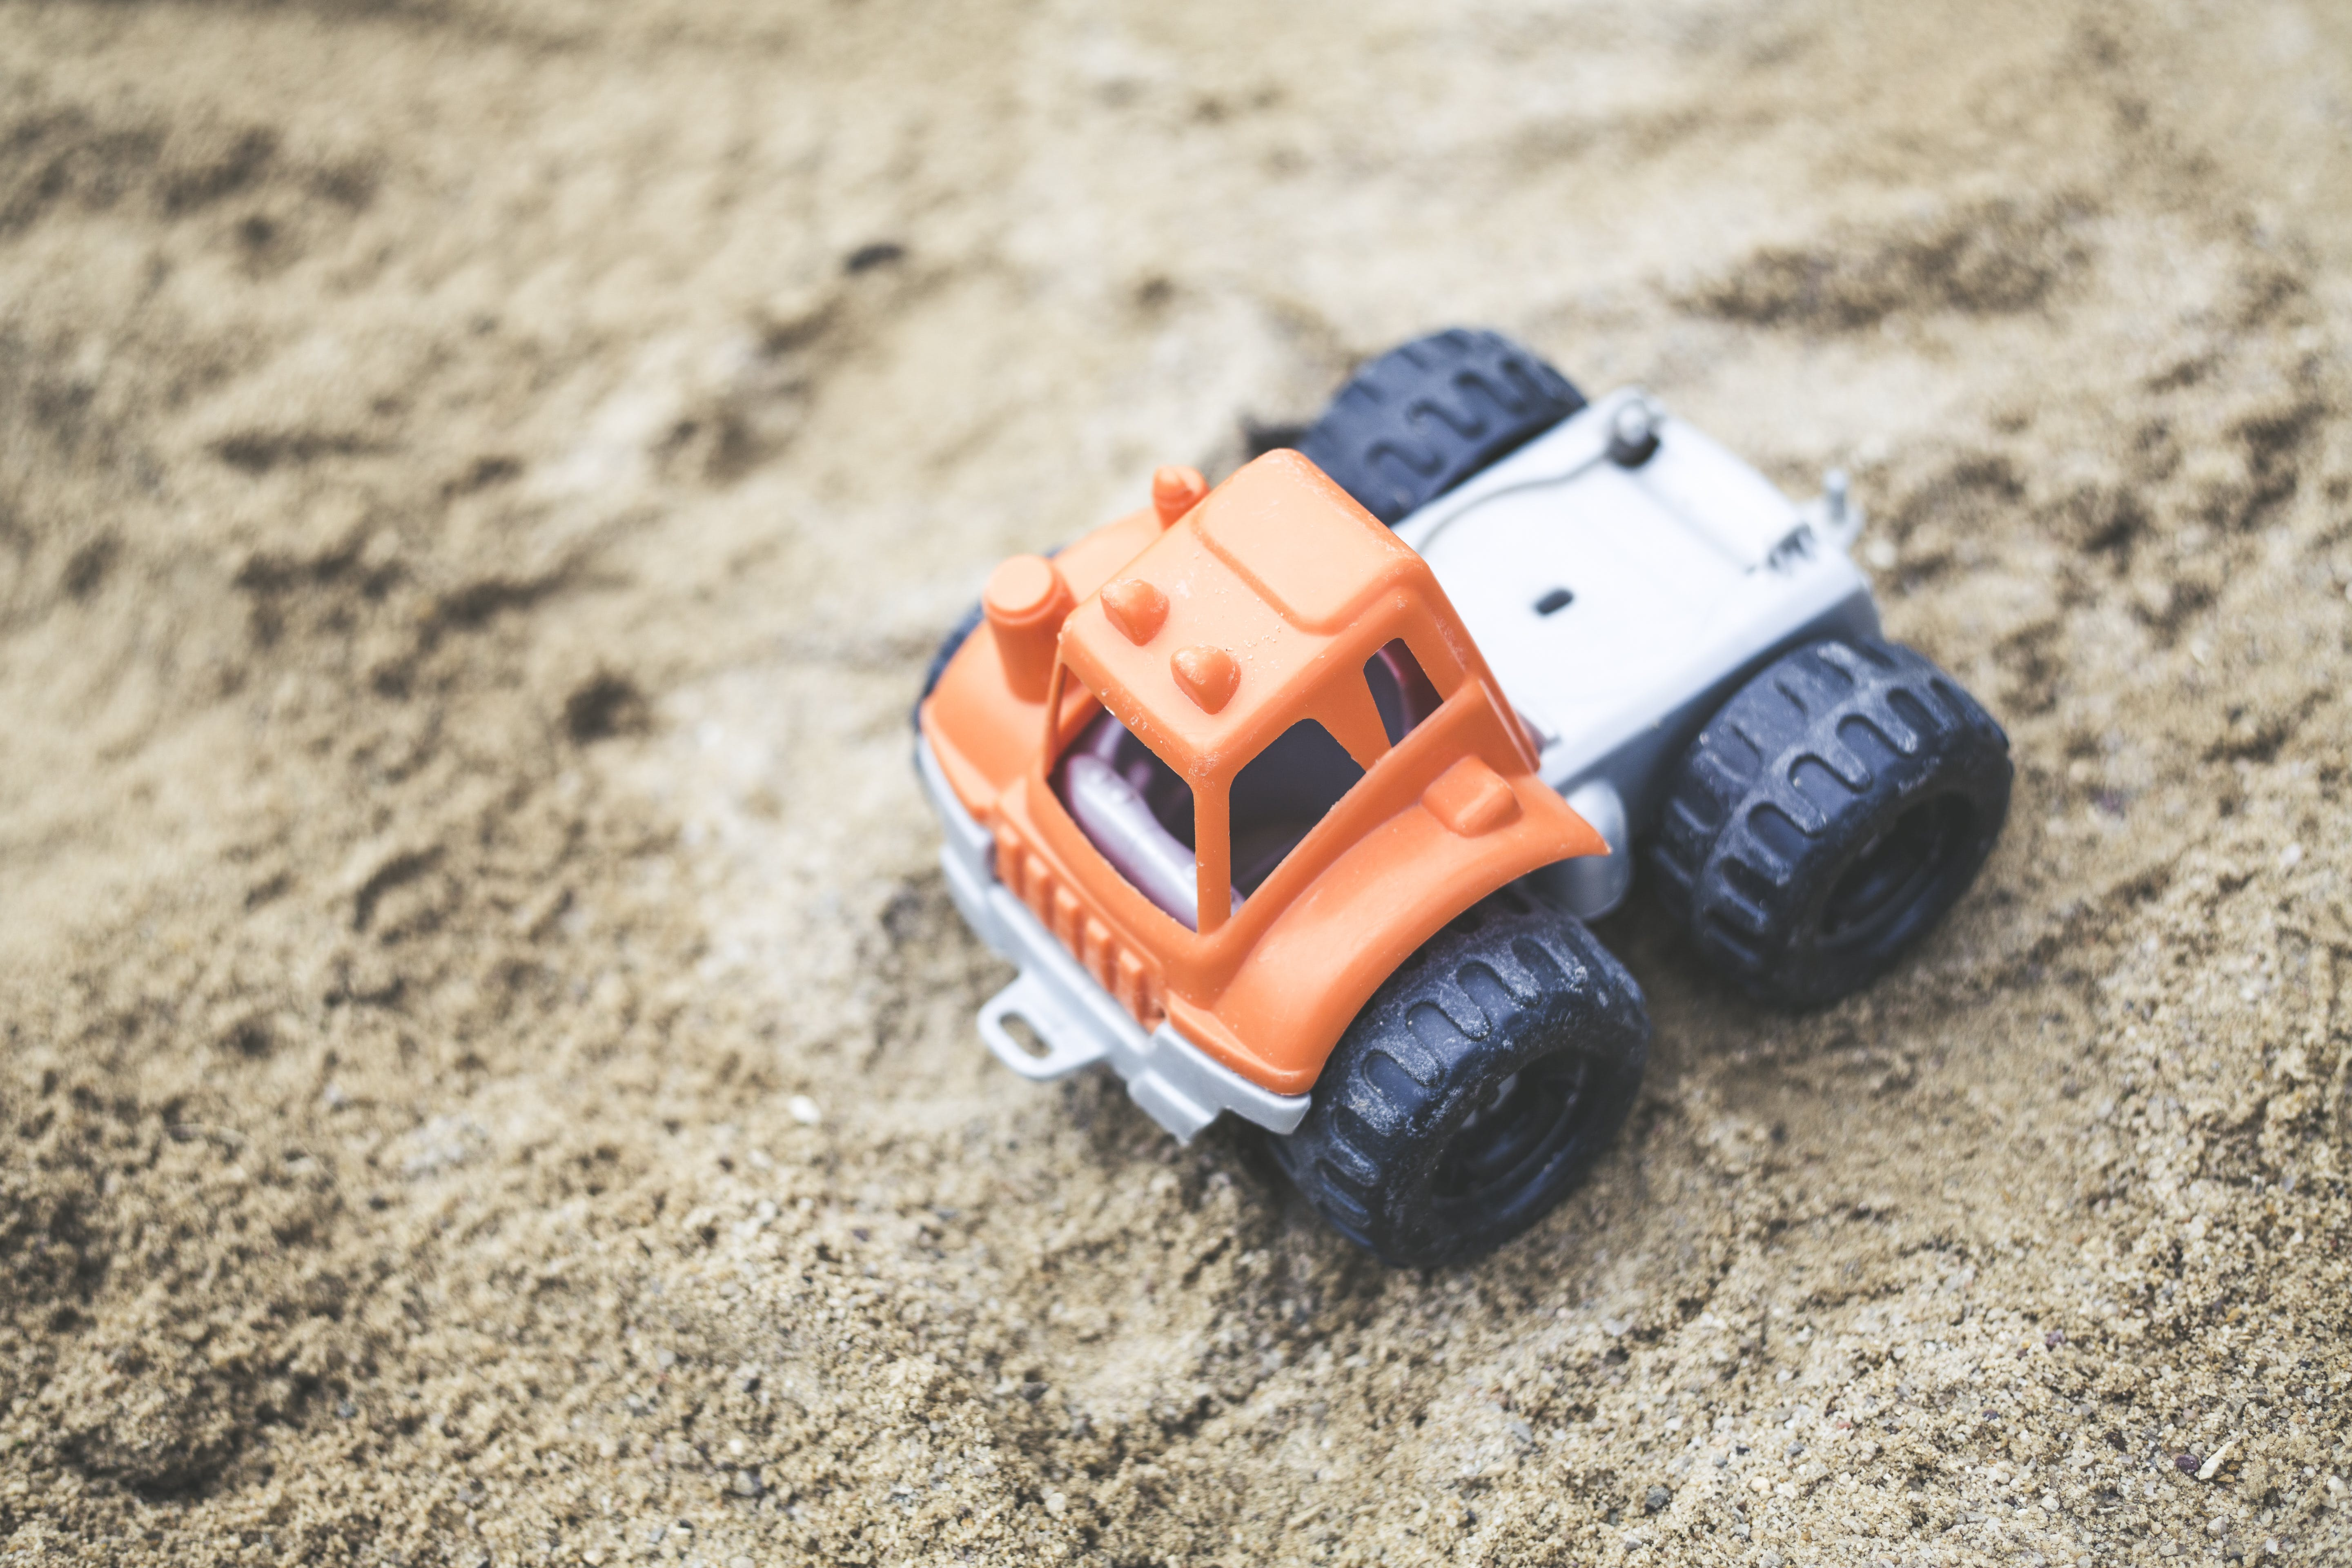 Orange and Gray Plastic Truck Toy on Sand